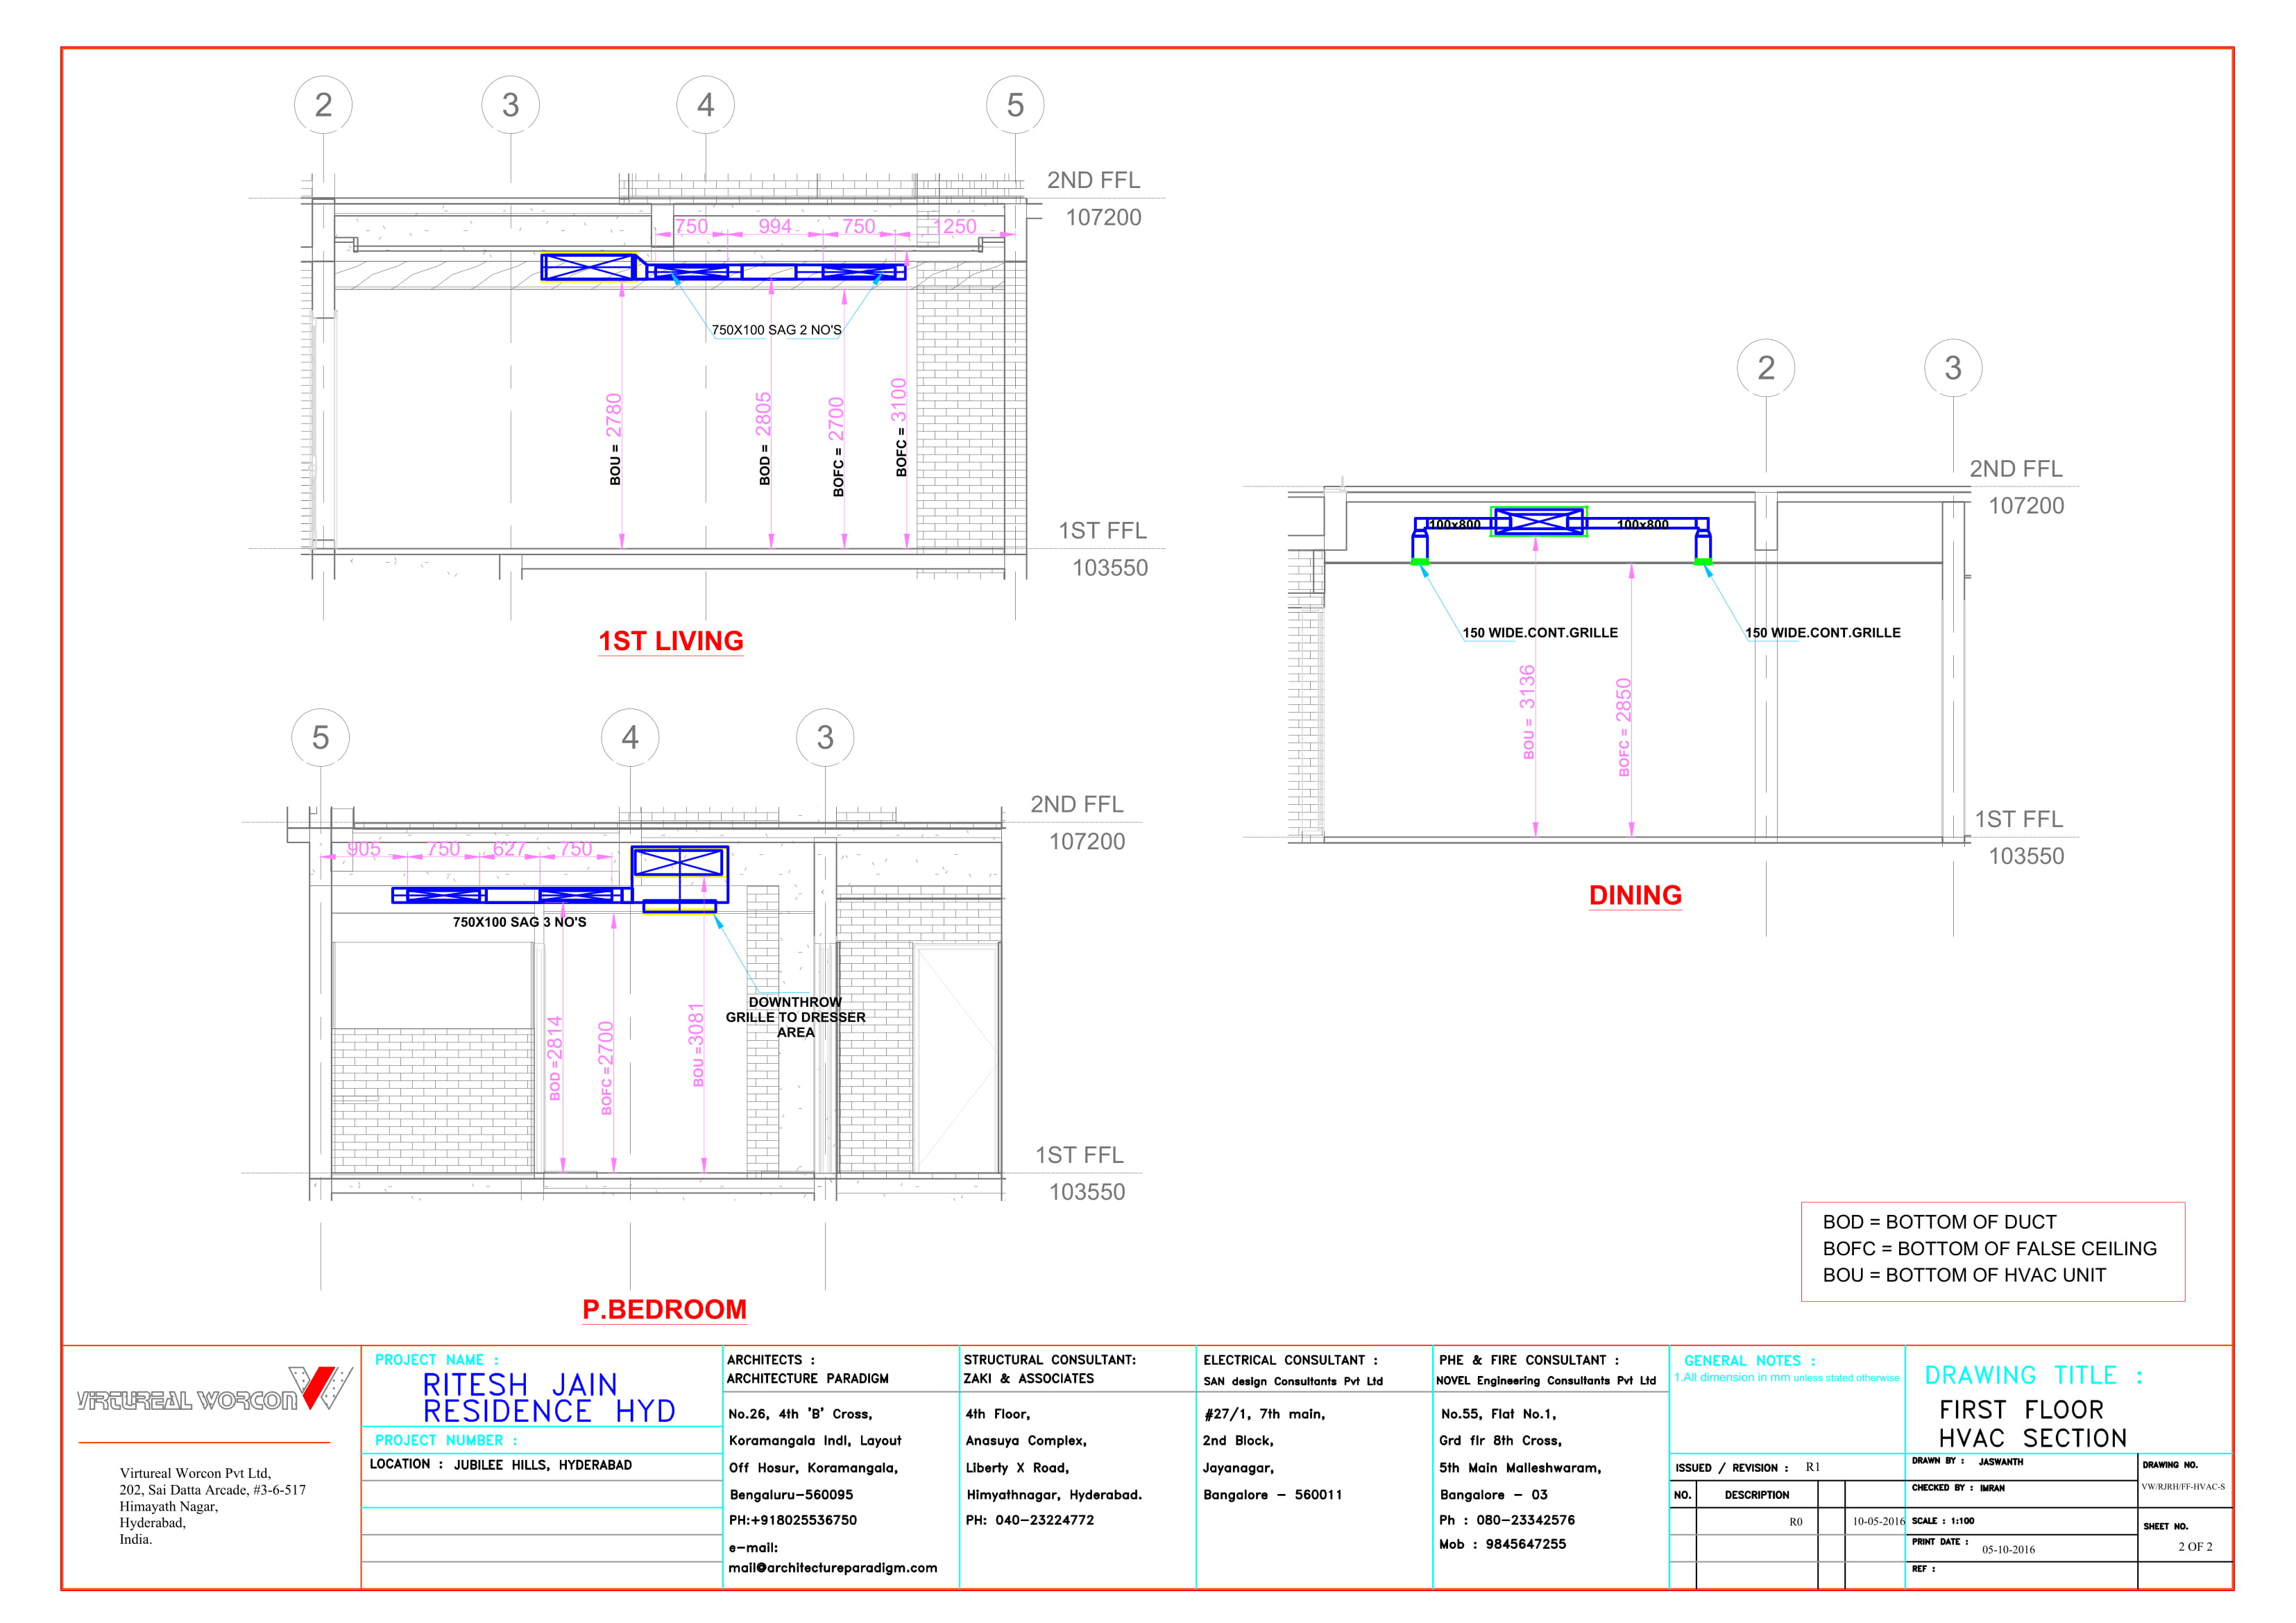 Virtureal Worcon Hvac Drawing Sample Sections